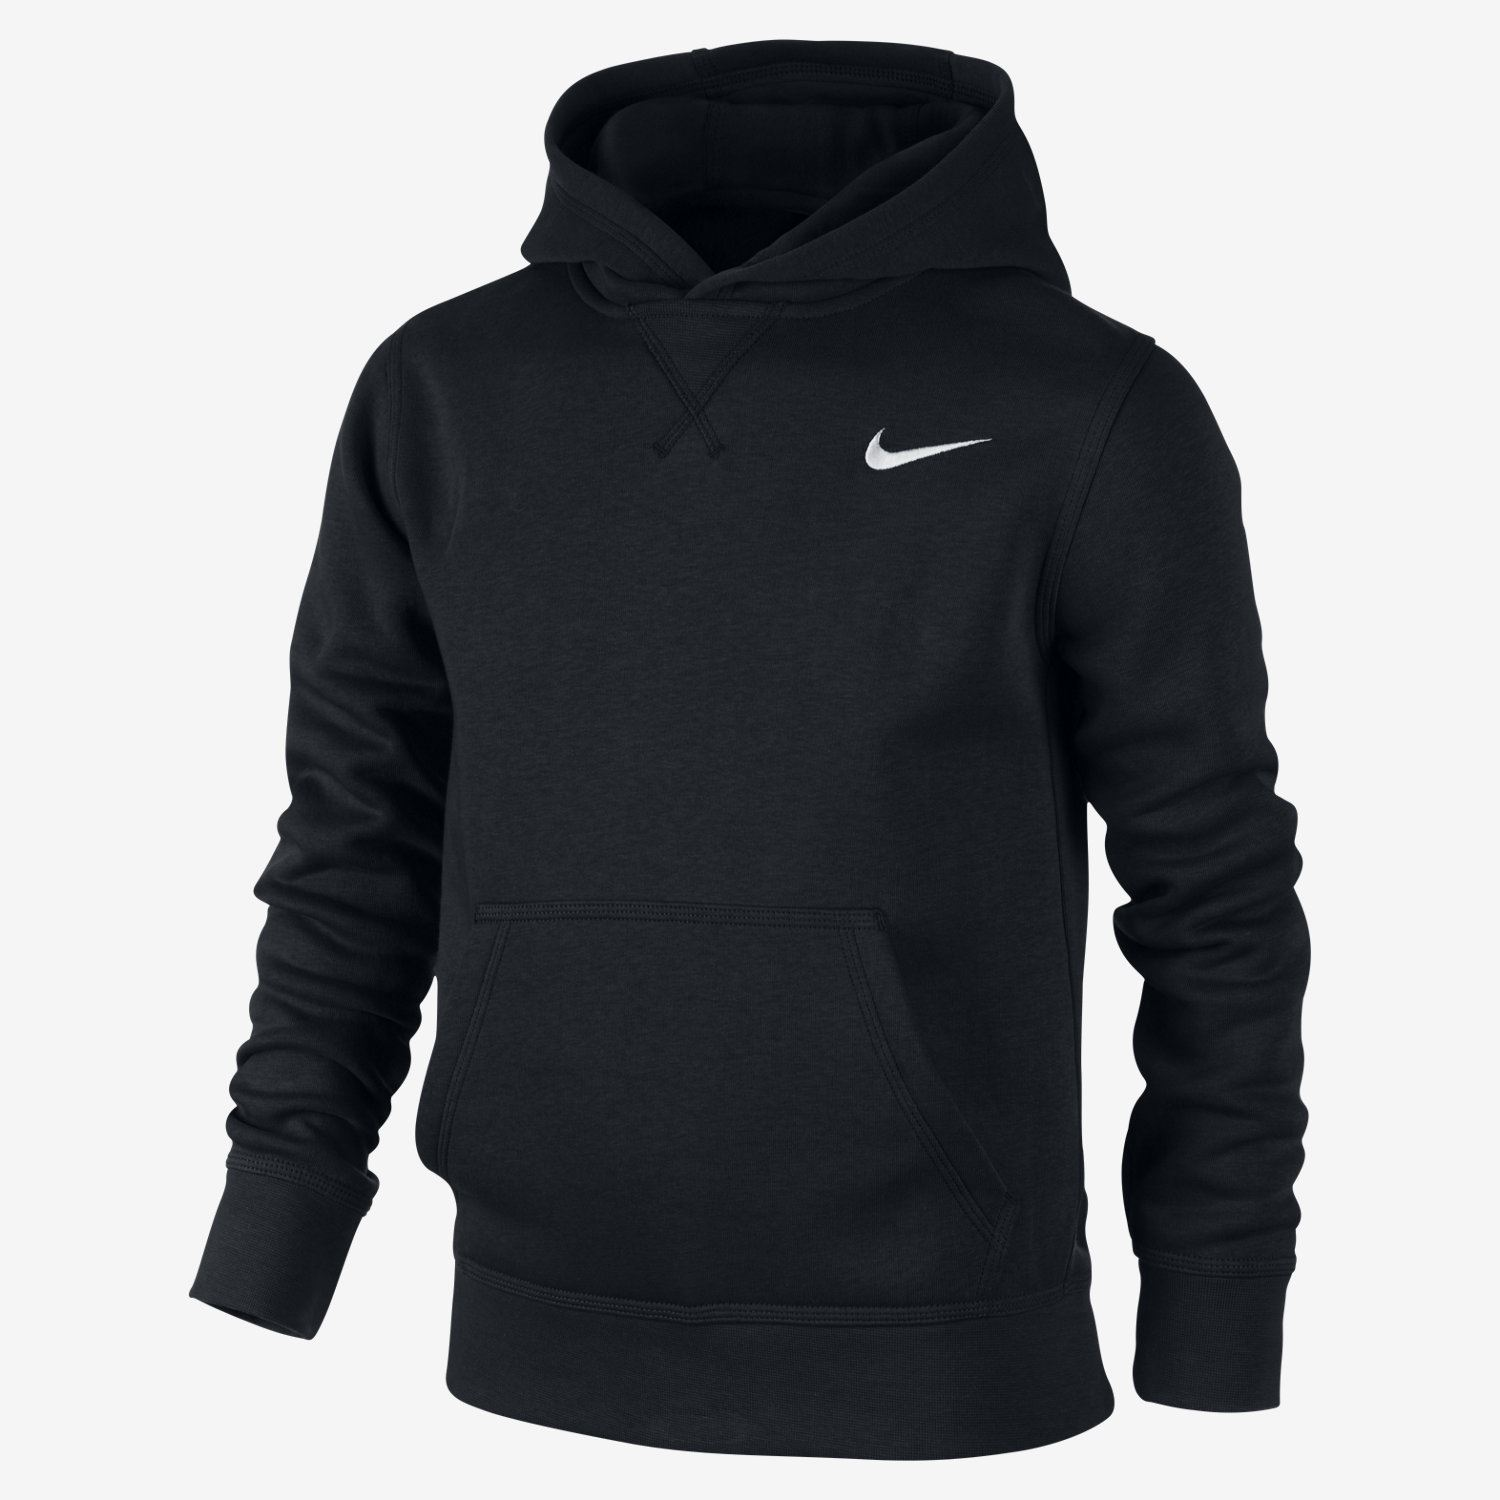 Nike baseball hoodies